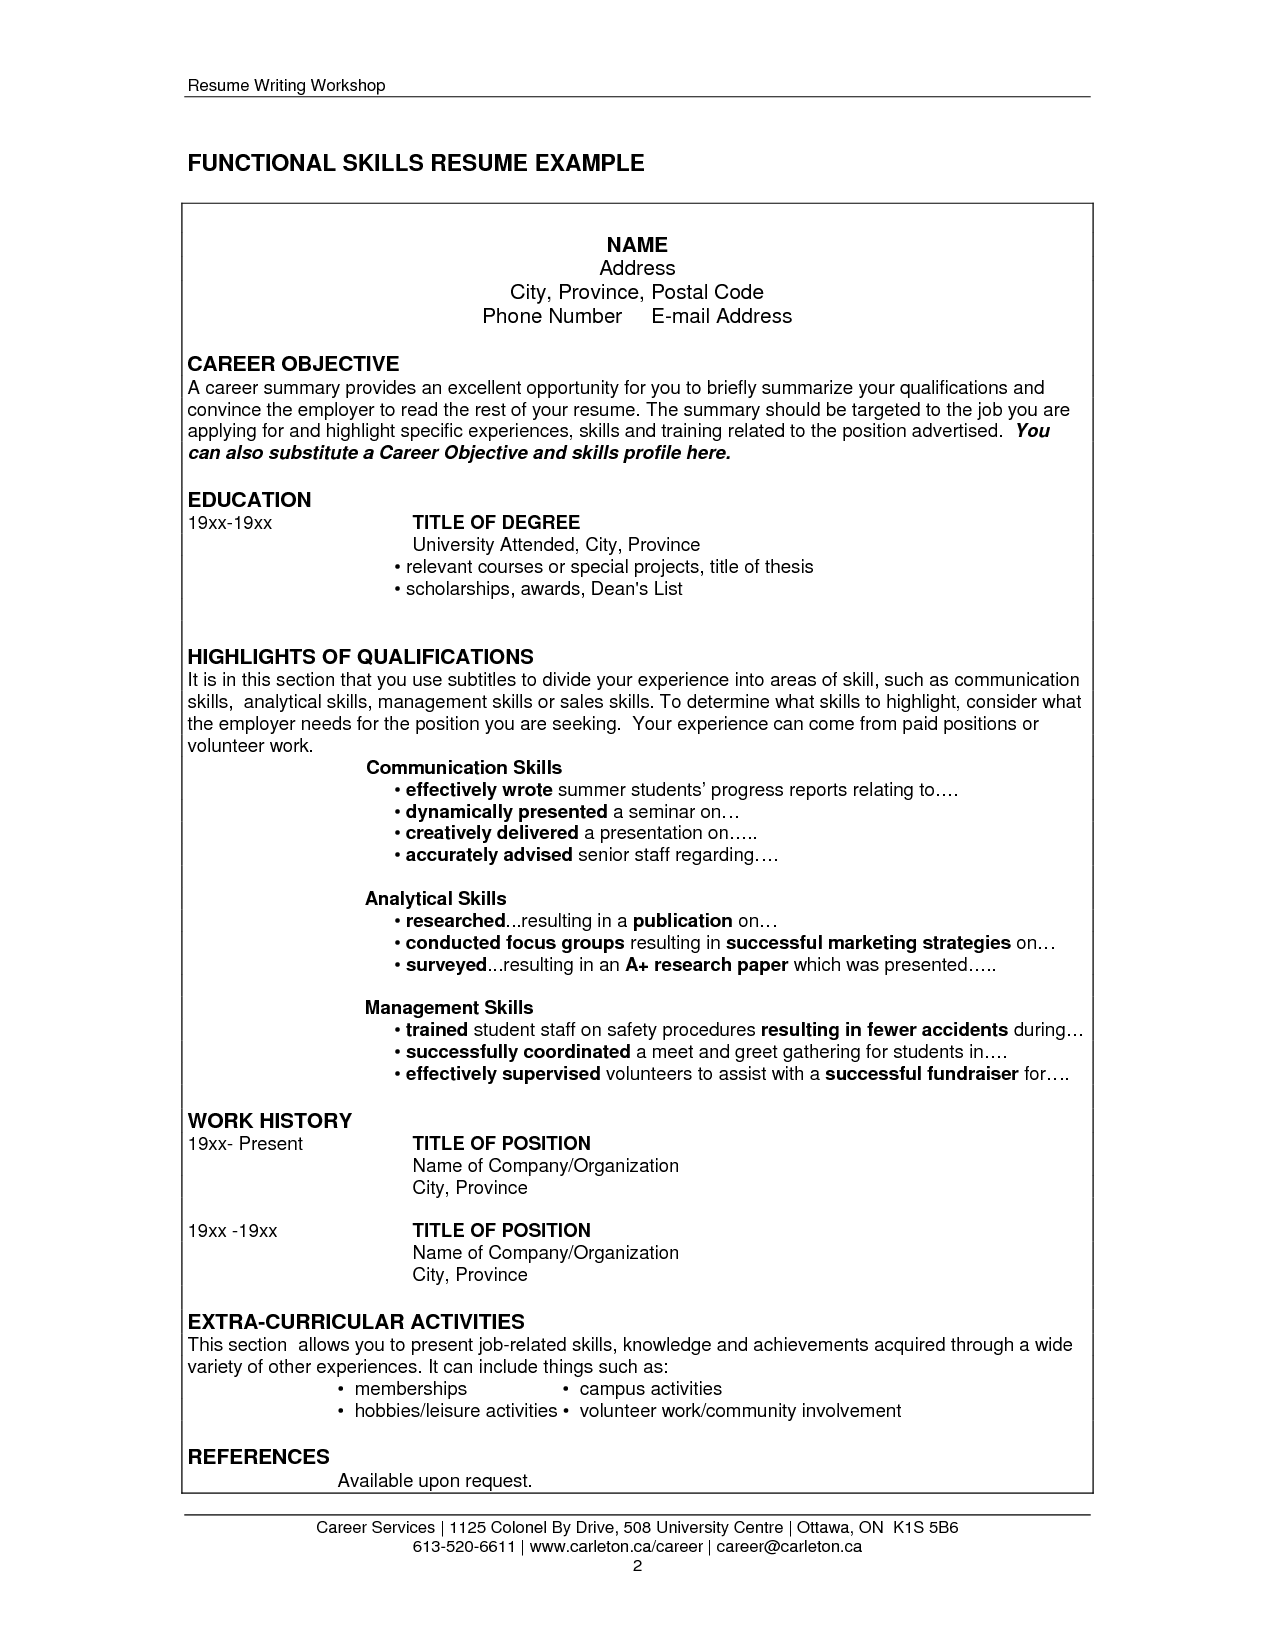 Skills On A Resume Image Result For Skills Resume Format  Business  Pinterest